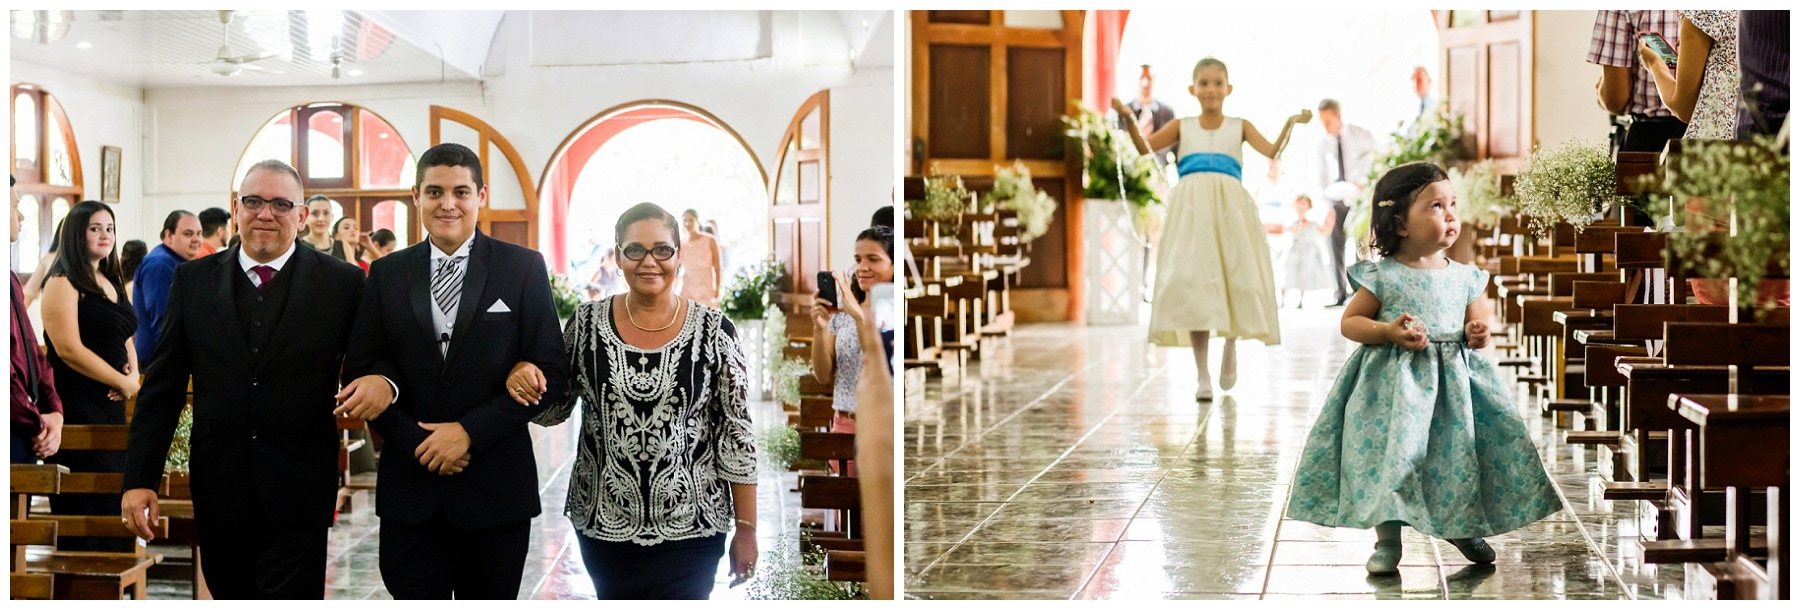 church wedding, costa rica, manuel antonio